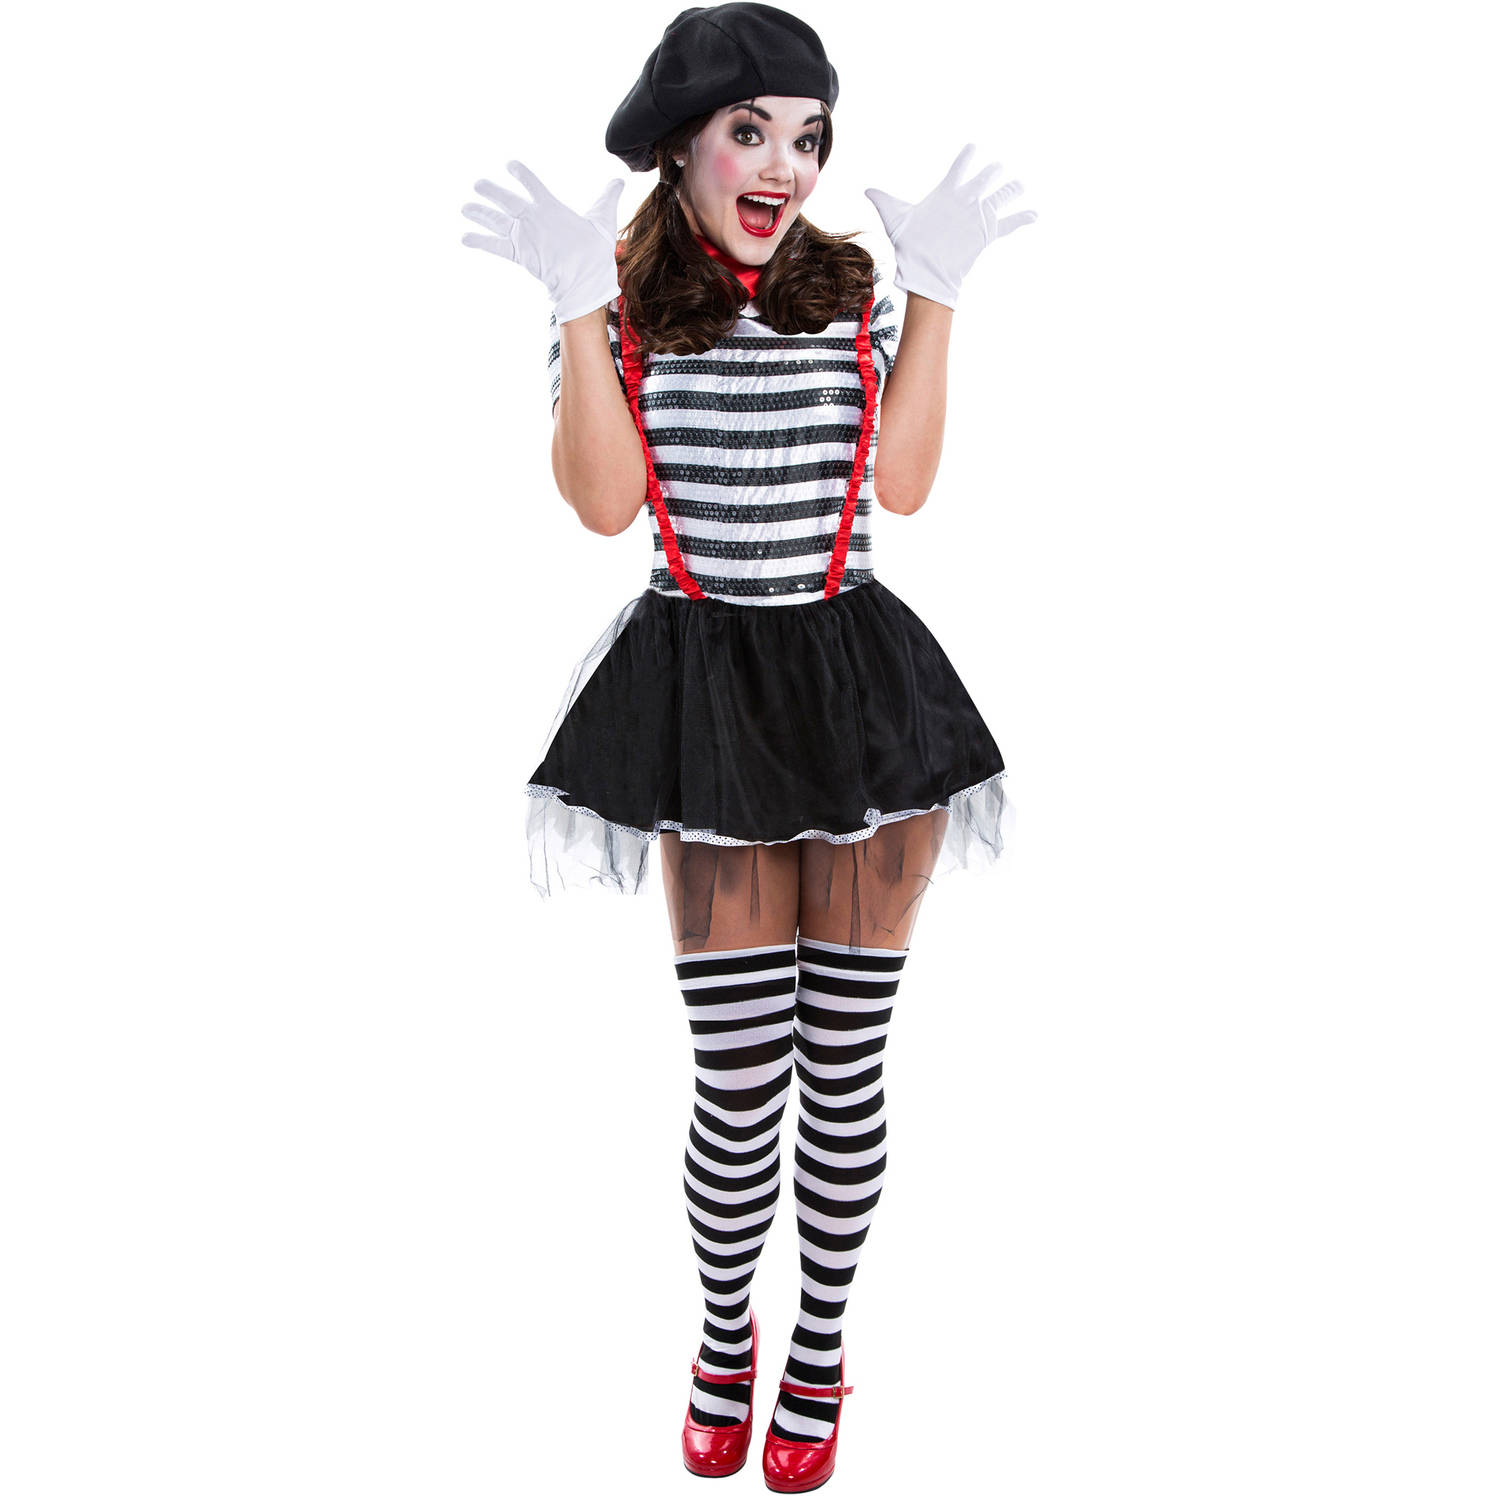 mime womens adult halloween dress up role play costume walmartcom - Mime For Halloween